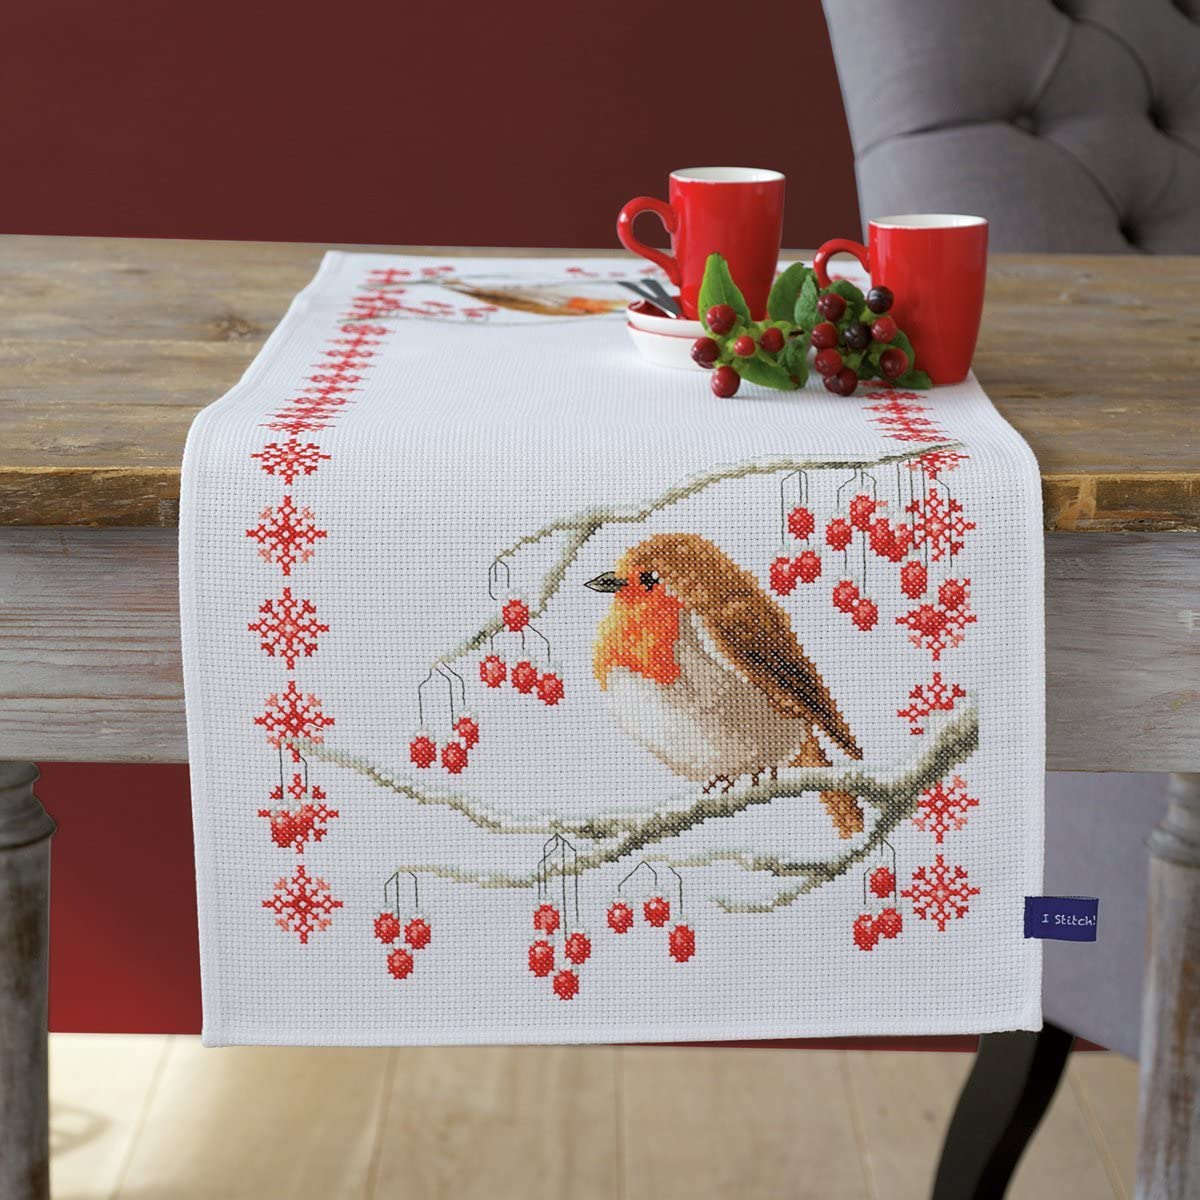 Vervaco Proud Robin Table Counted Spasm price Runner Cross-Stitch Kit Cheap mail order shopping